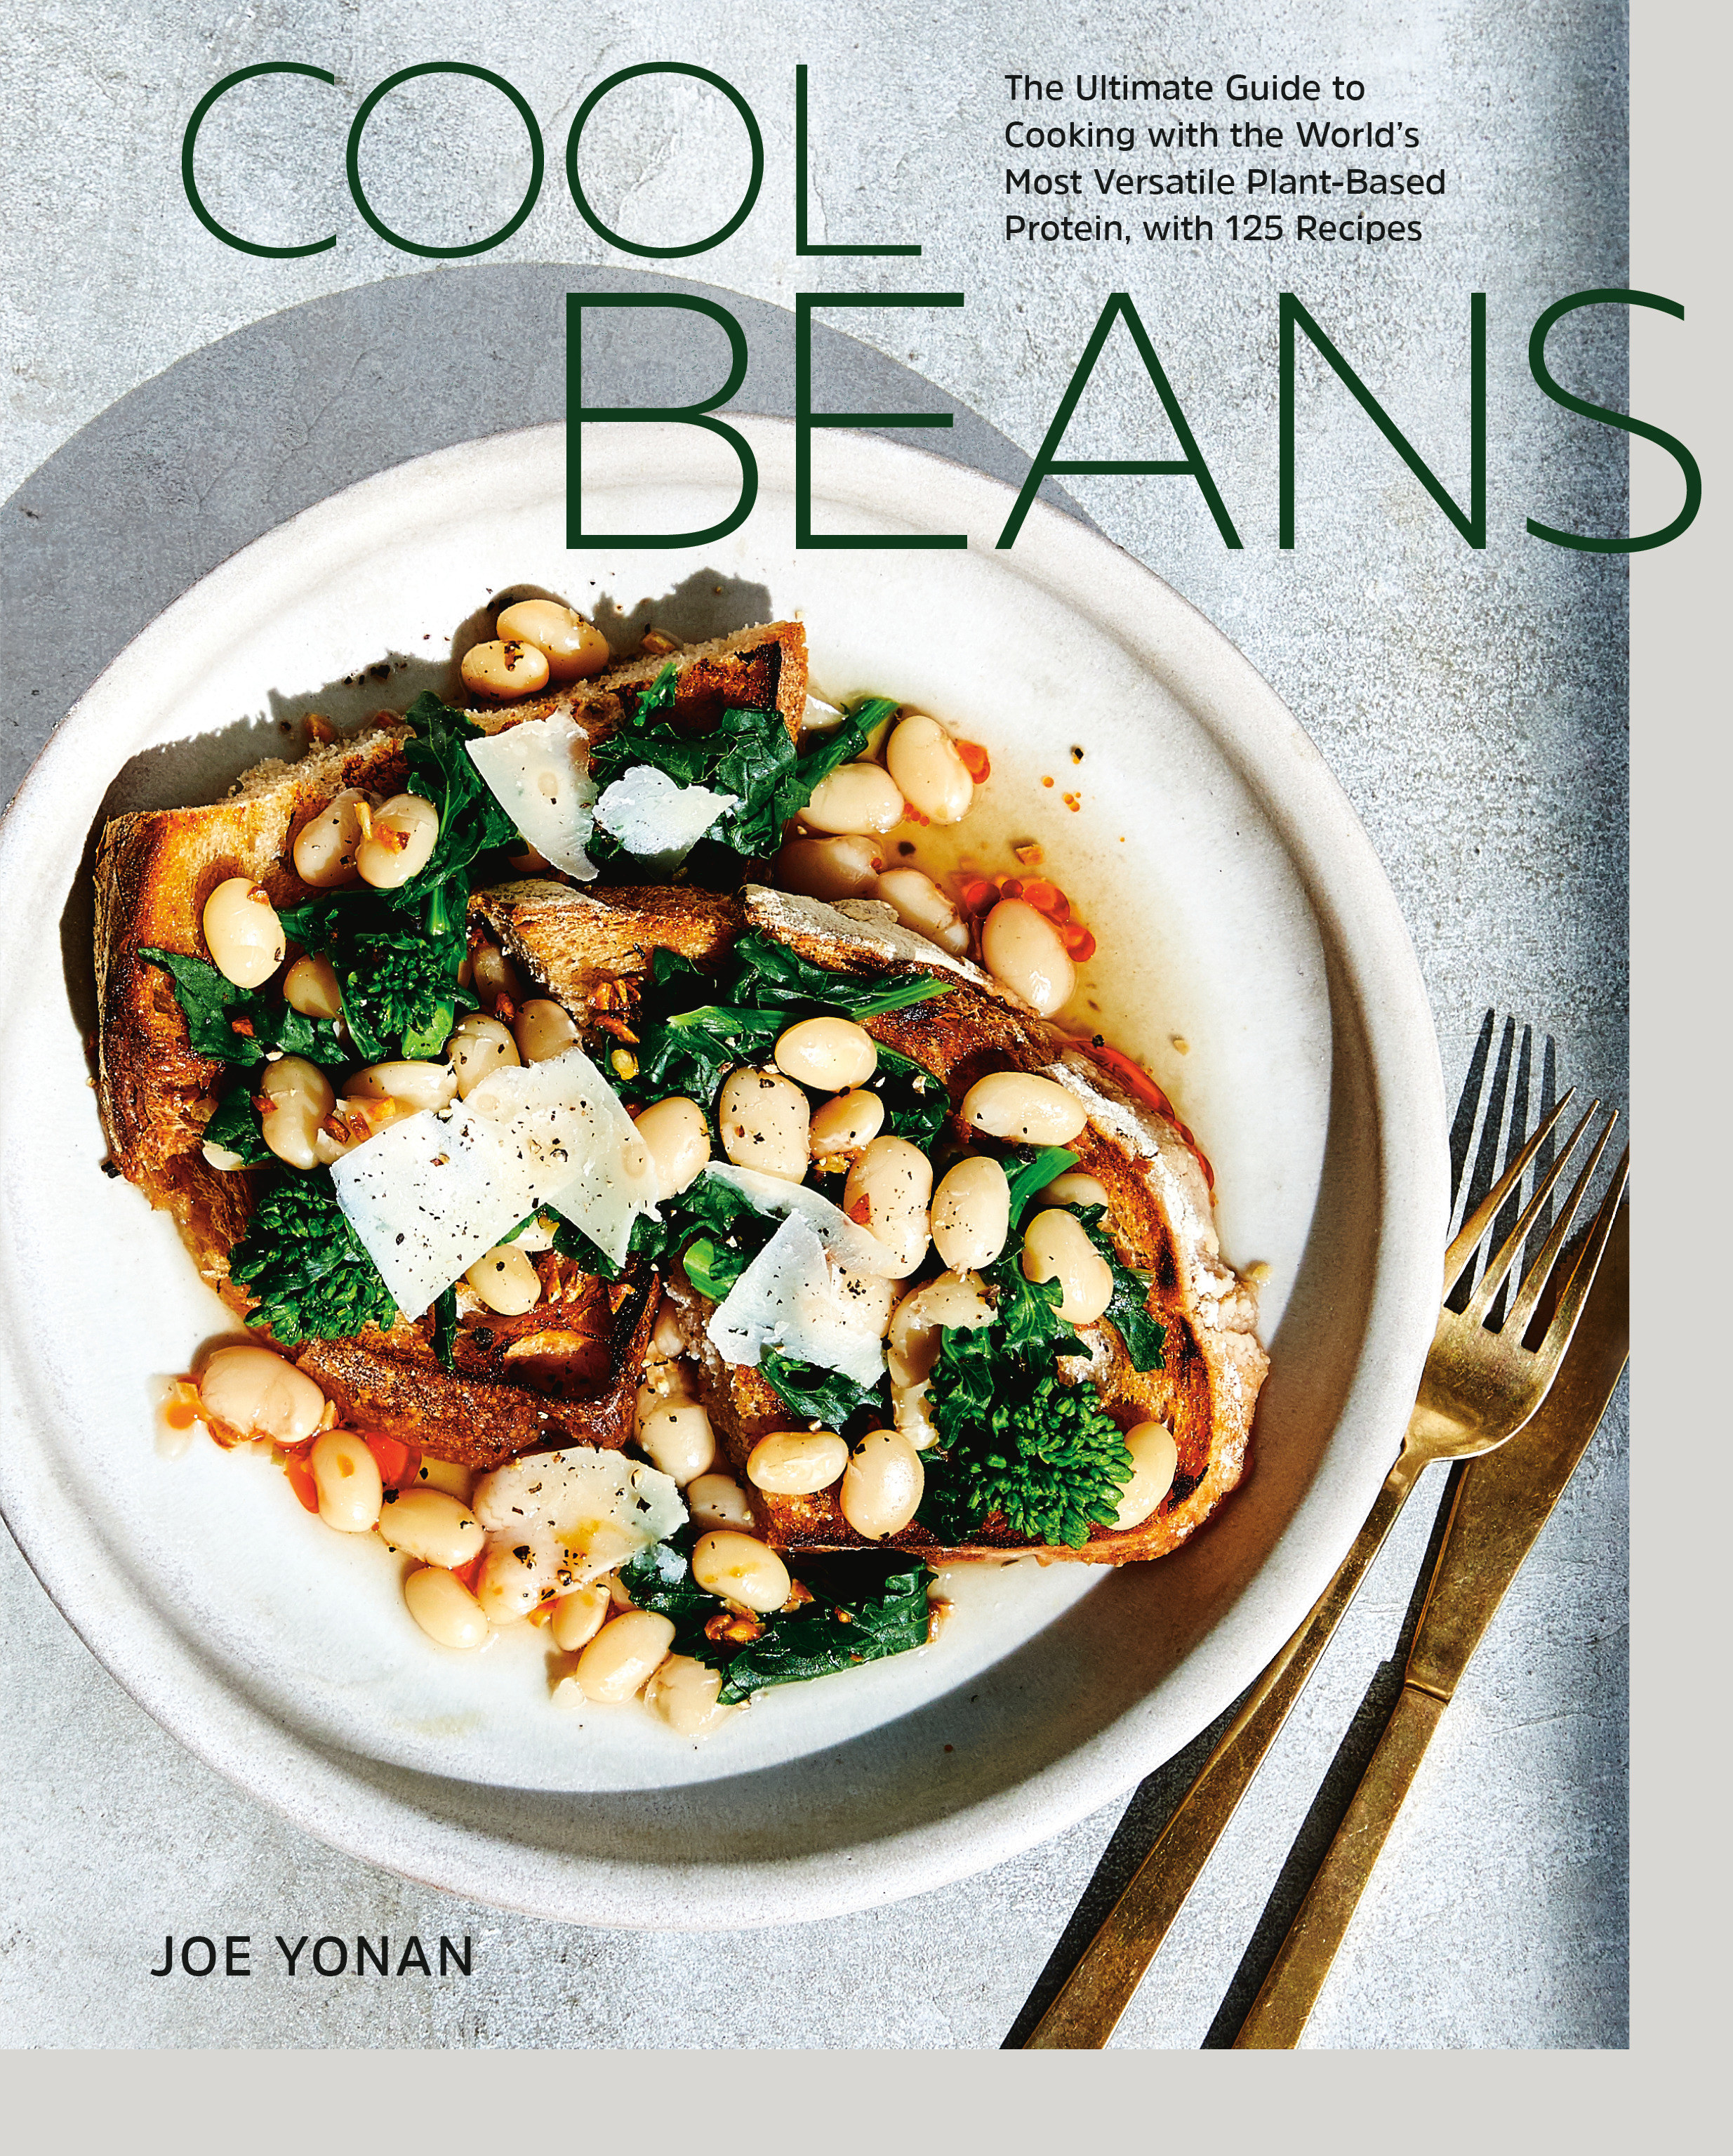 The cover of 'Cool Beans' by Joe Yonan